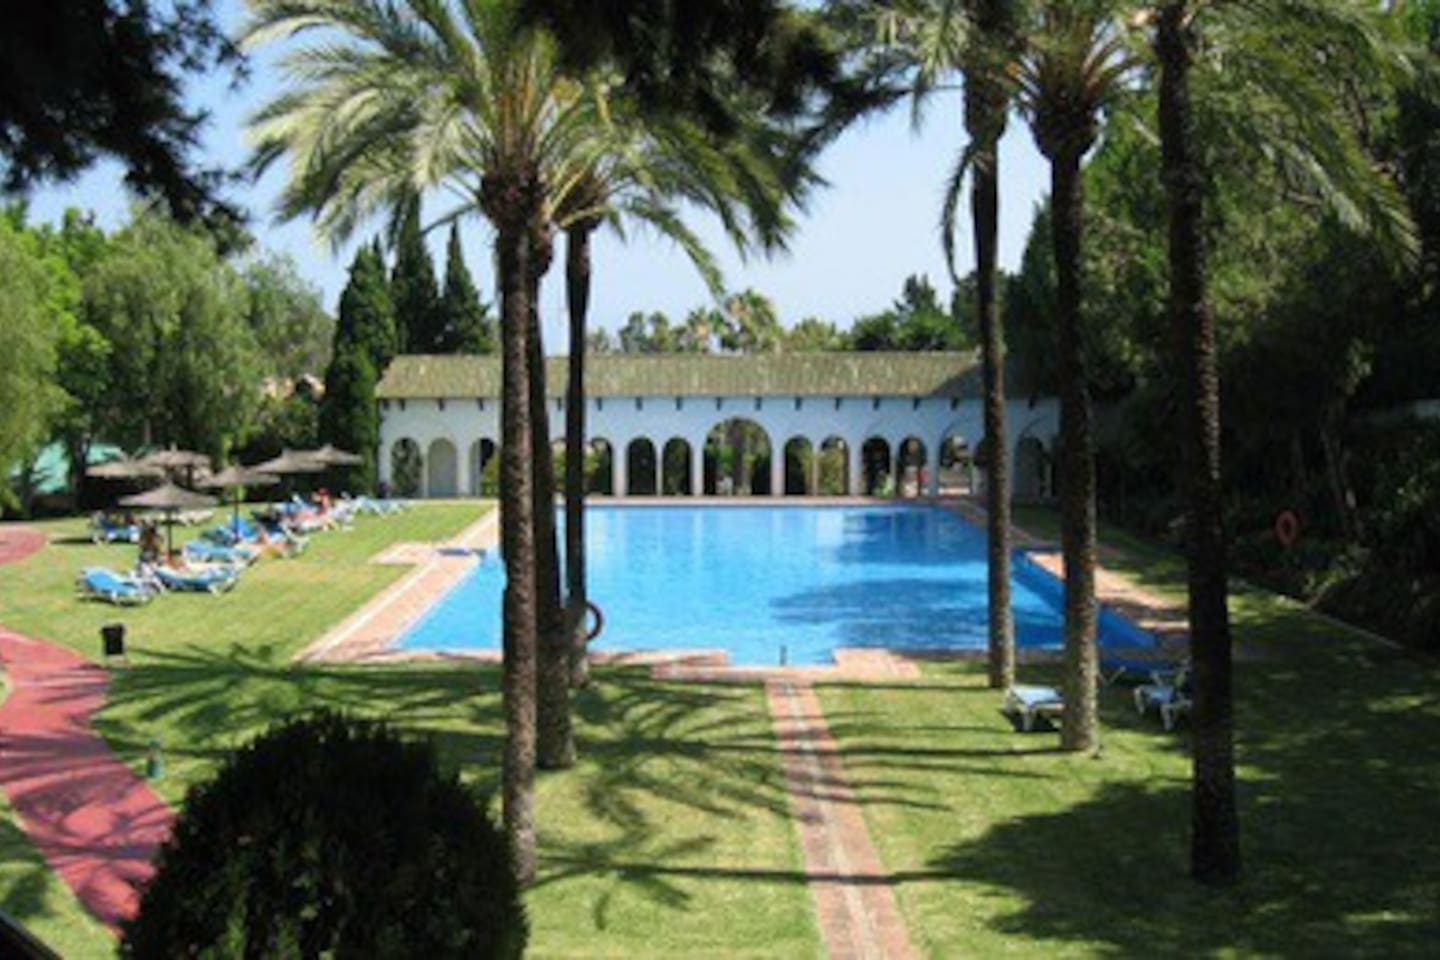 """Main pool and """"area tranquilidad"""", Family/childrens pool is located just behind the portals"""